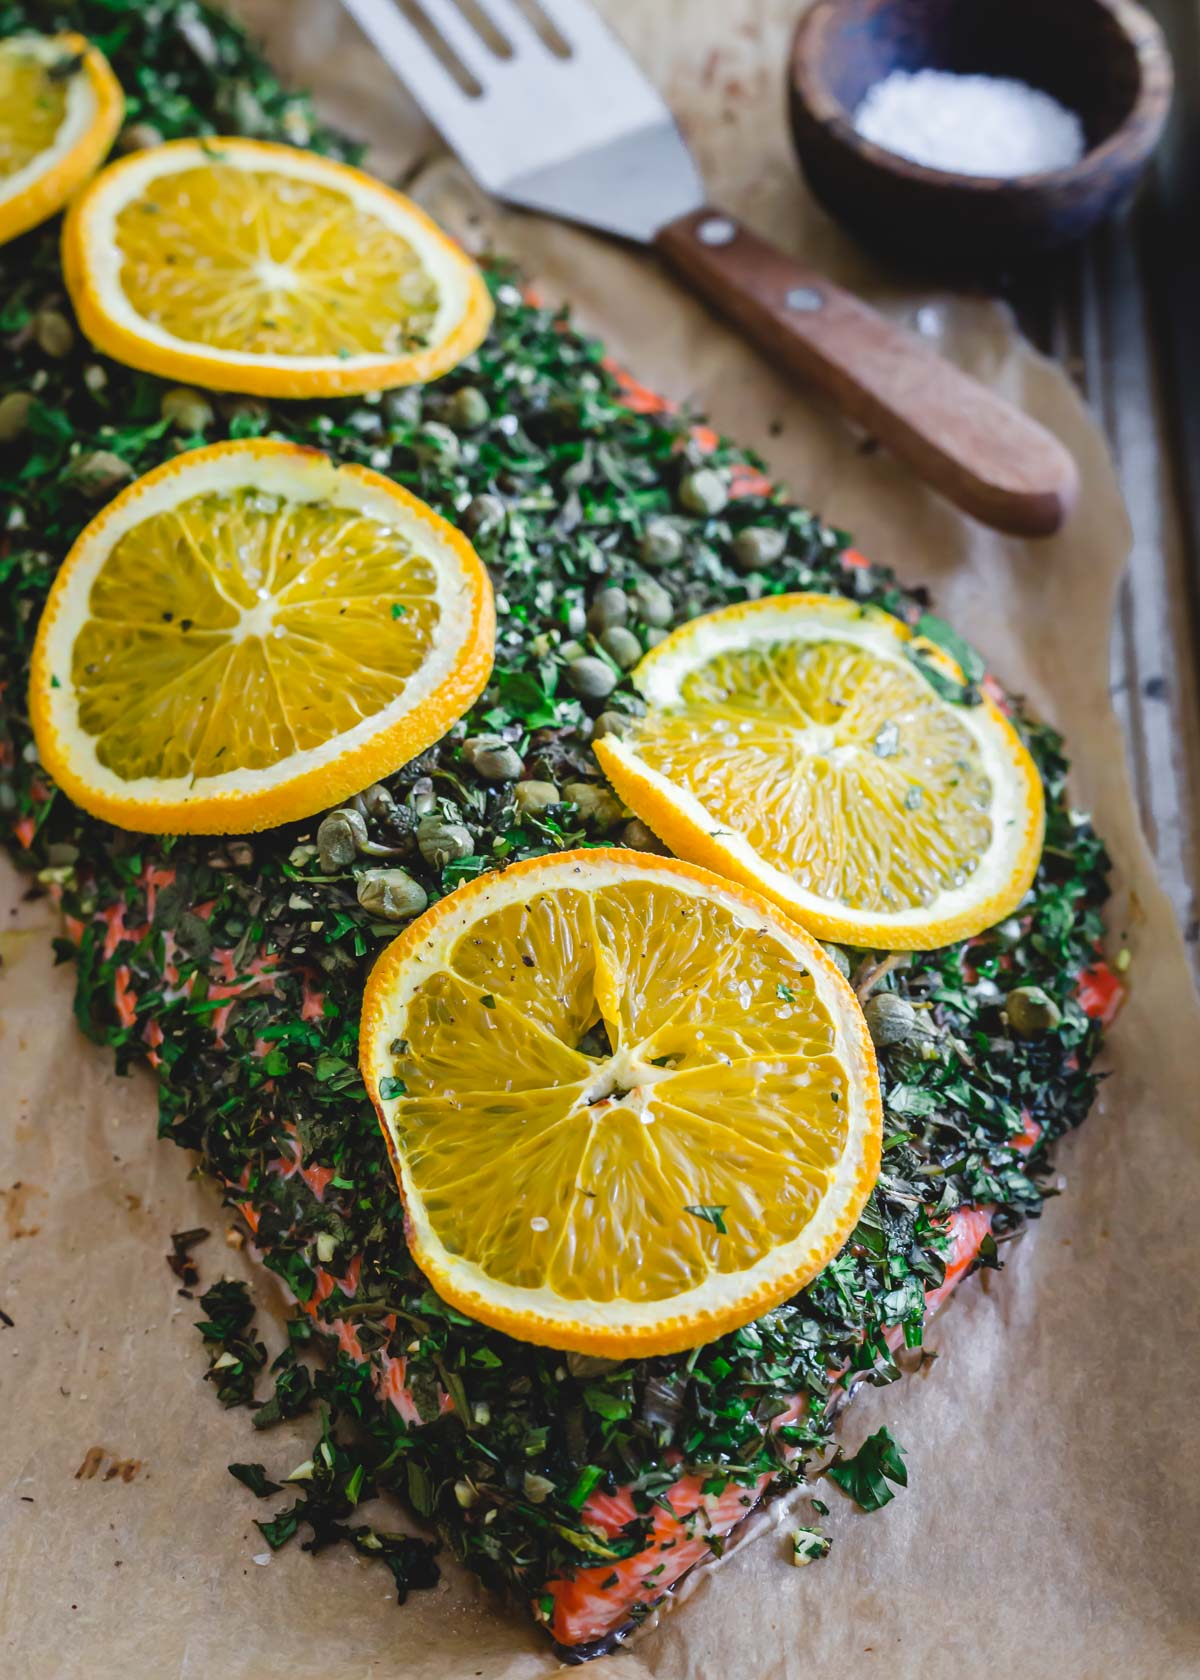 Baked sockeye salmon recipe with fresh herbs, garlic, capers and citrus.